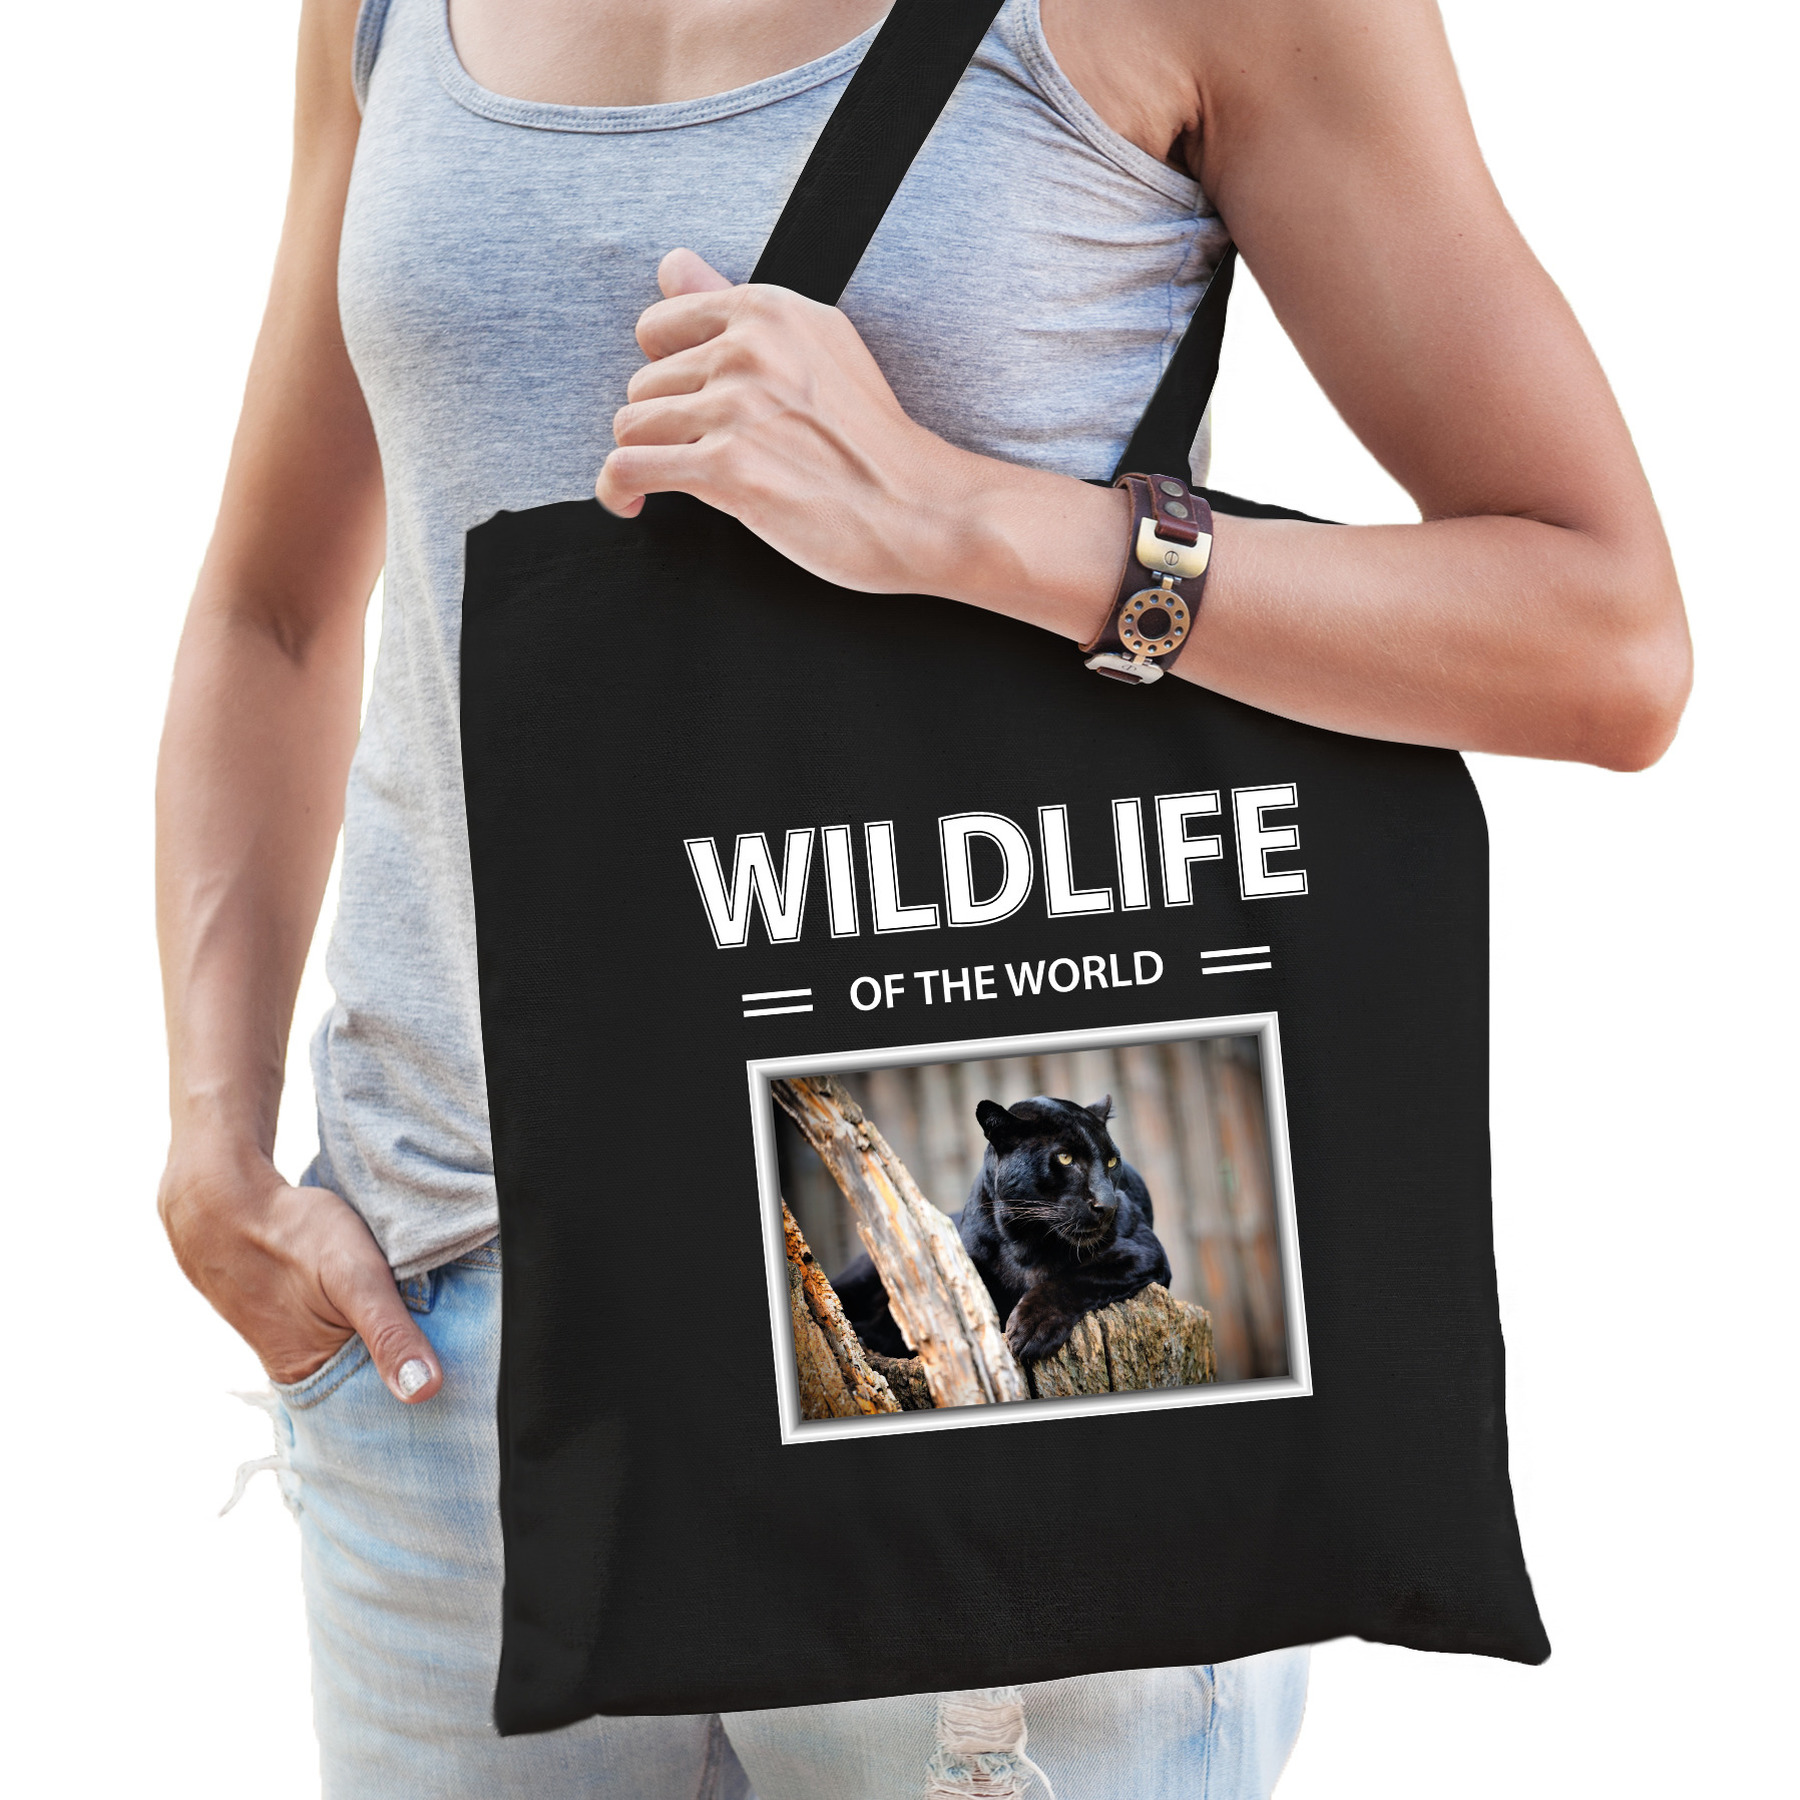 Katoenen tasje Panters zwart - wildlife of the world Zwarte panter cadeau tas